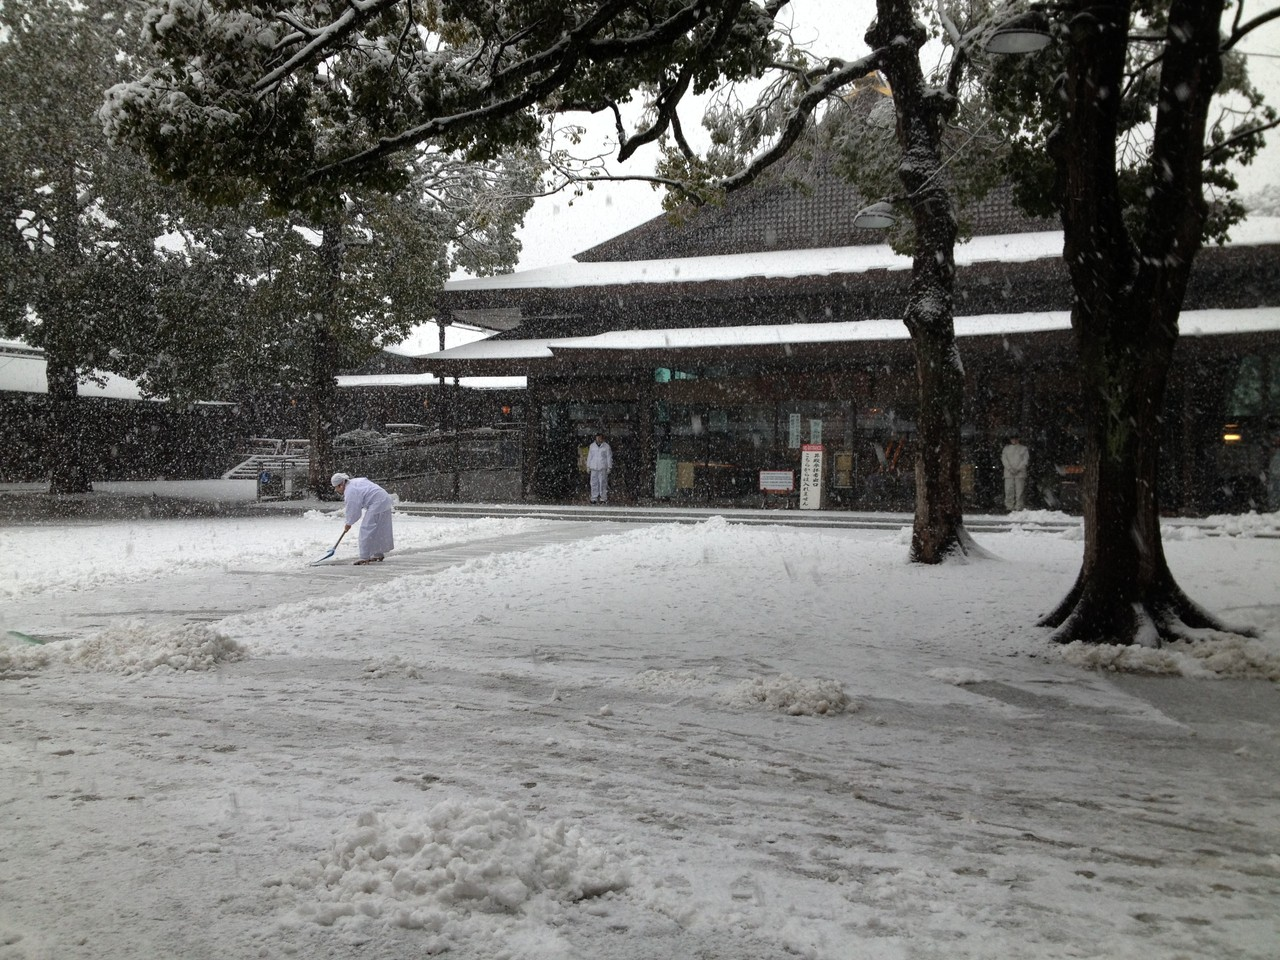 At 明治神宮 (Meiji Shrine).